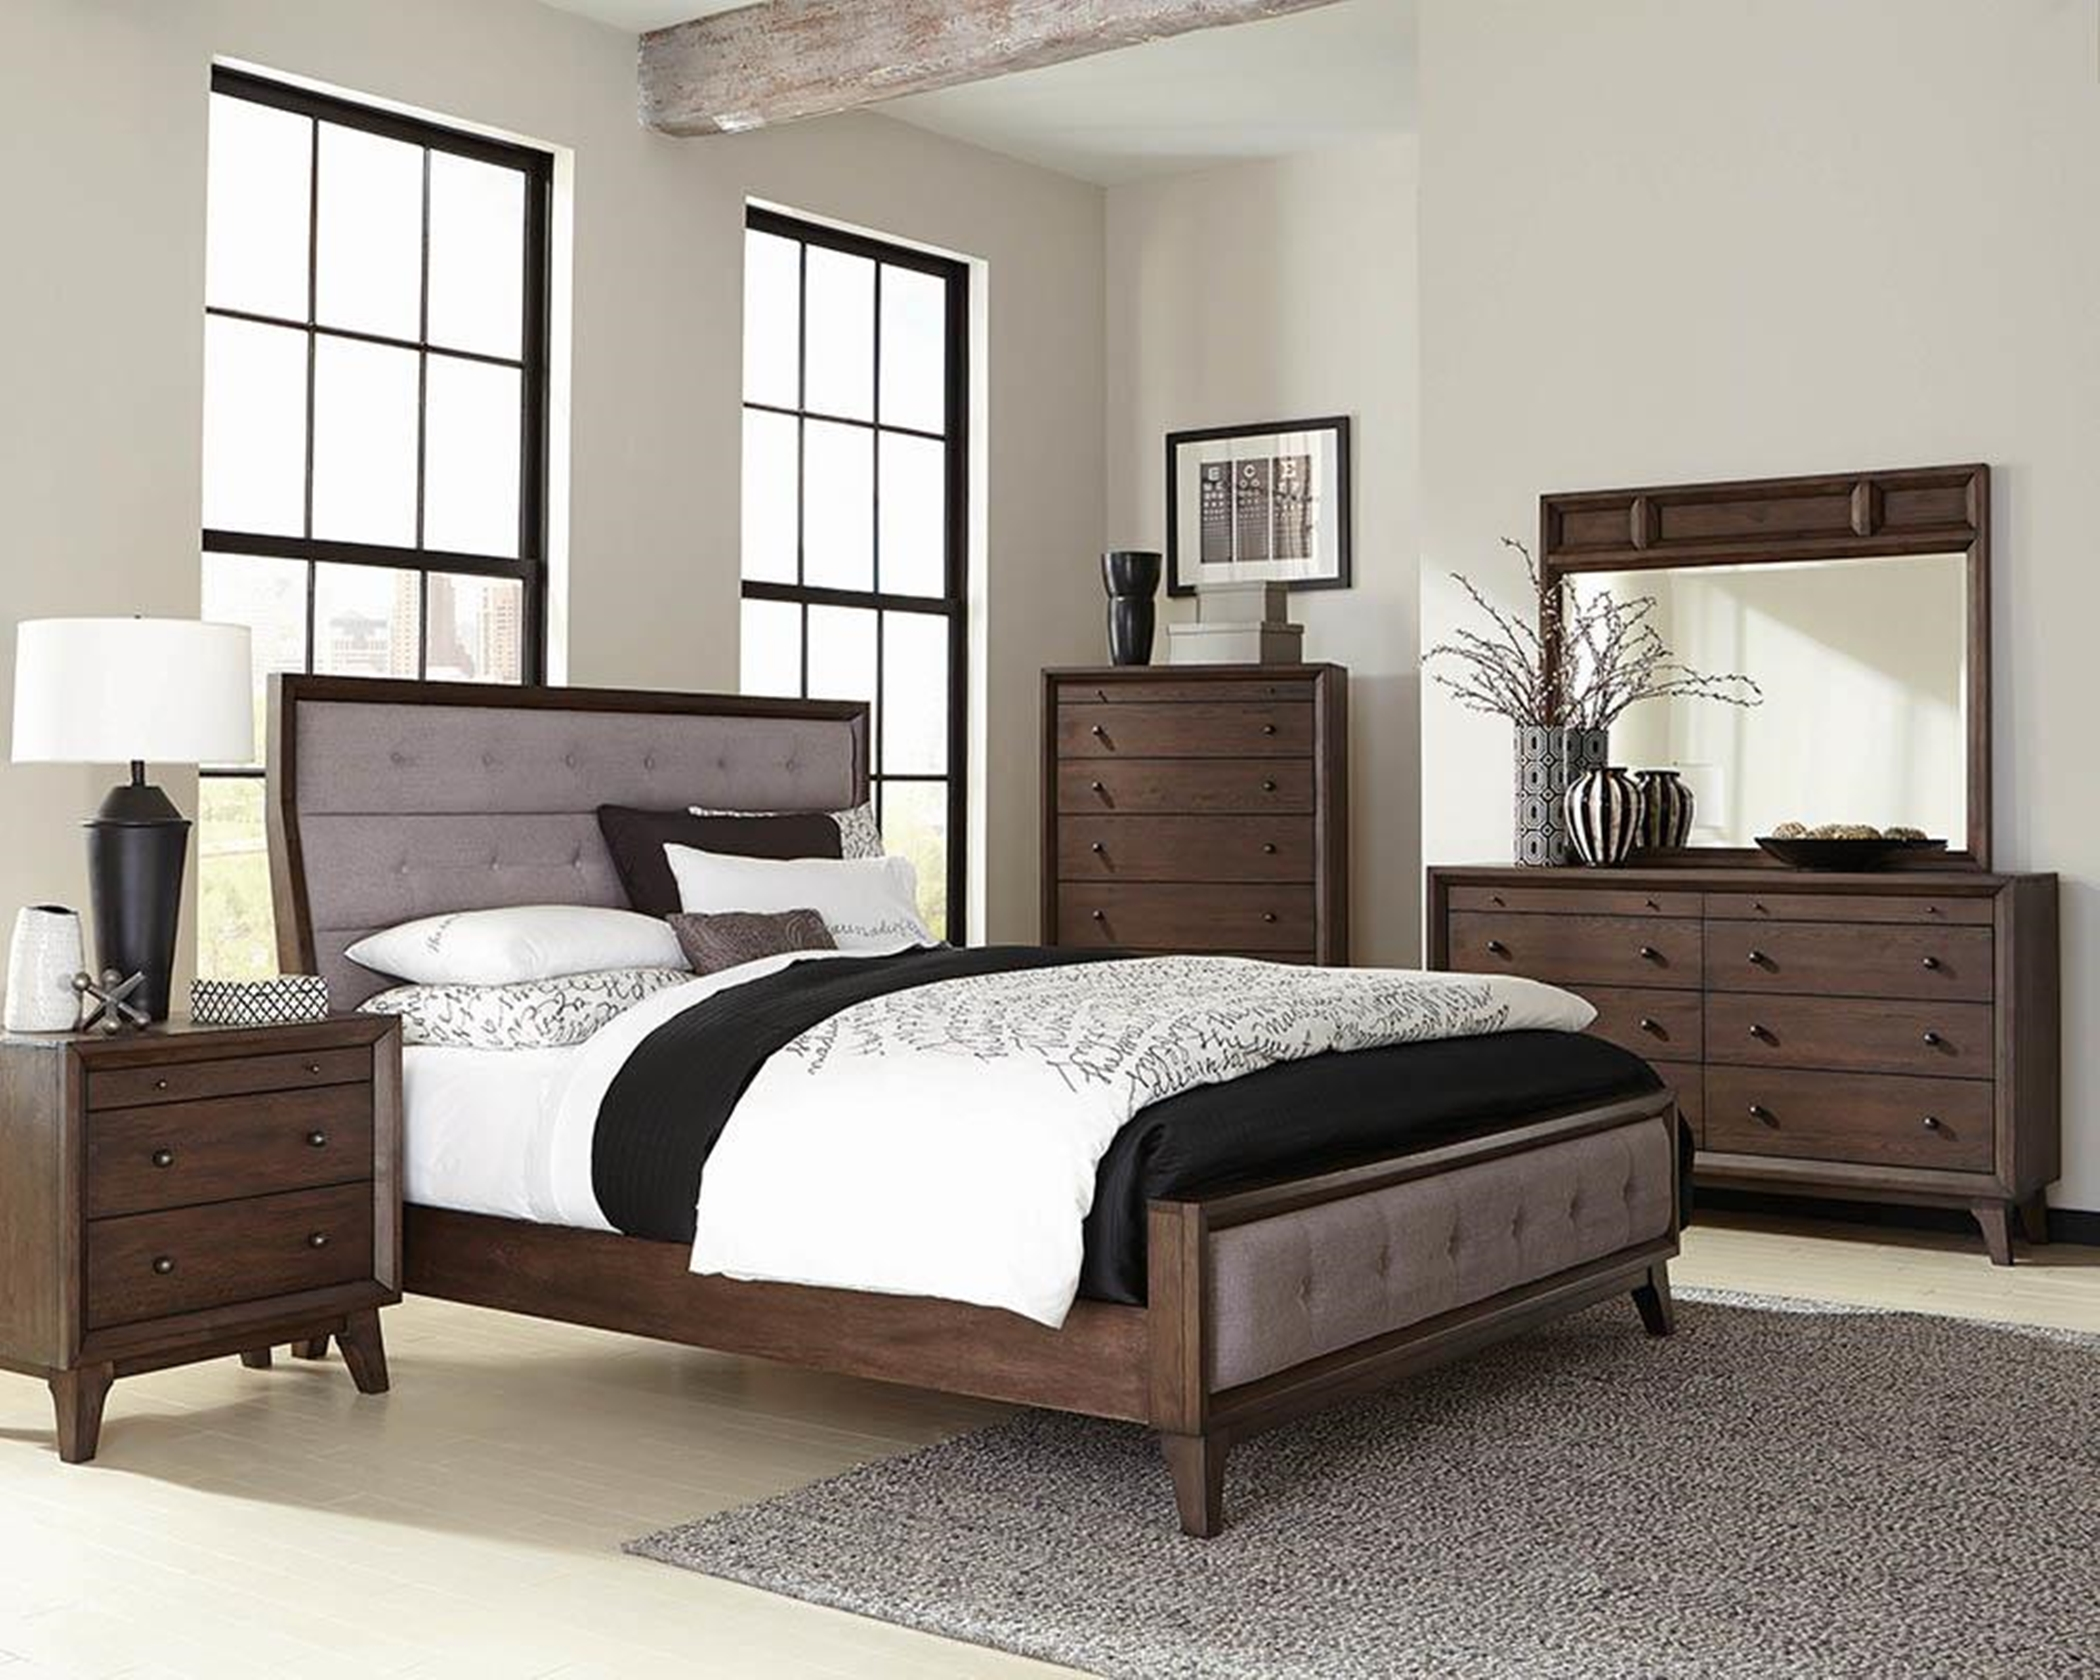 Bingham Retro-Modern Brown E. King Bed